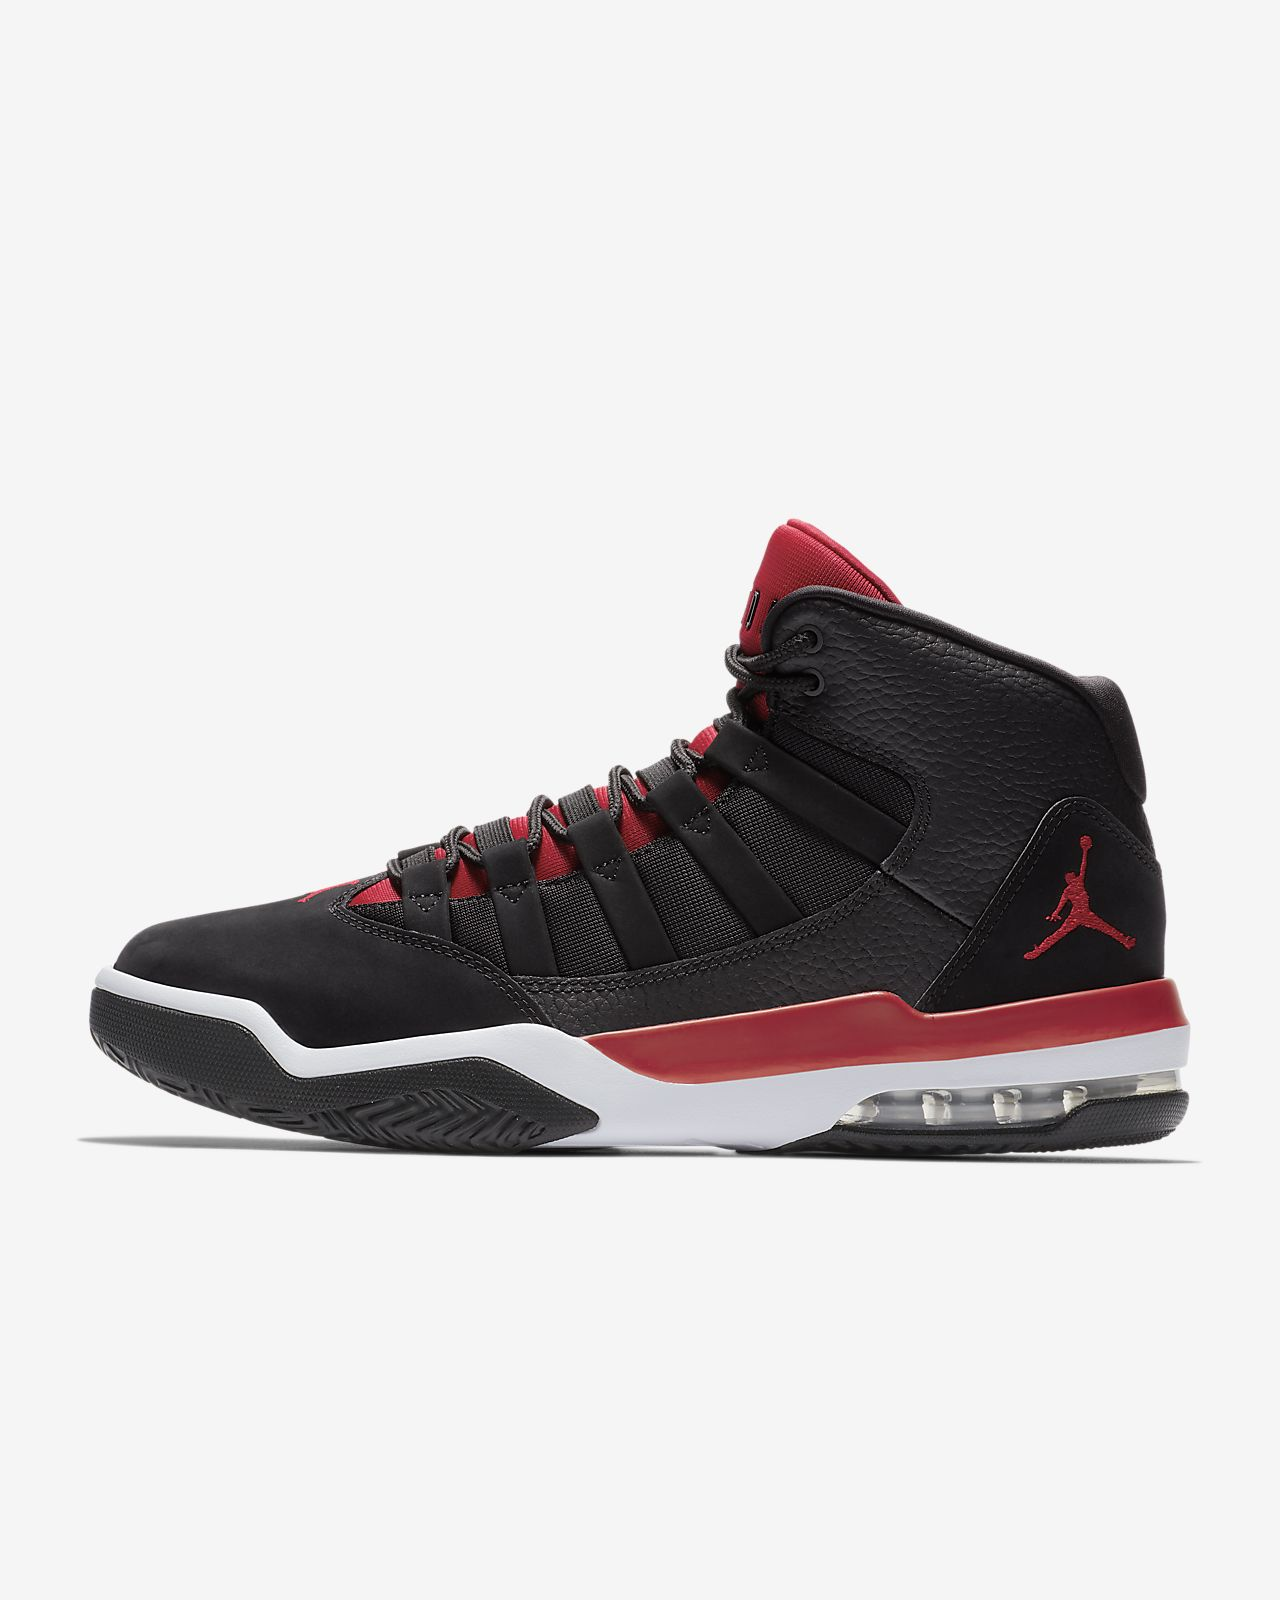 best service 5395a 134ba Low Resolution Jordan Max Aura Men s Basketball Shoe Jordan Max Aura Men s Basketball  Shoe